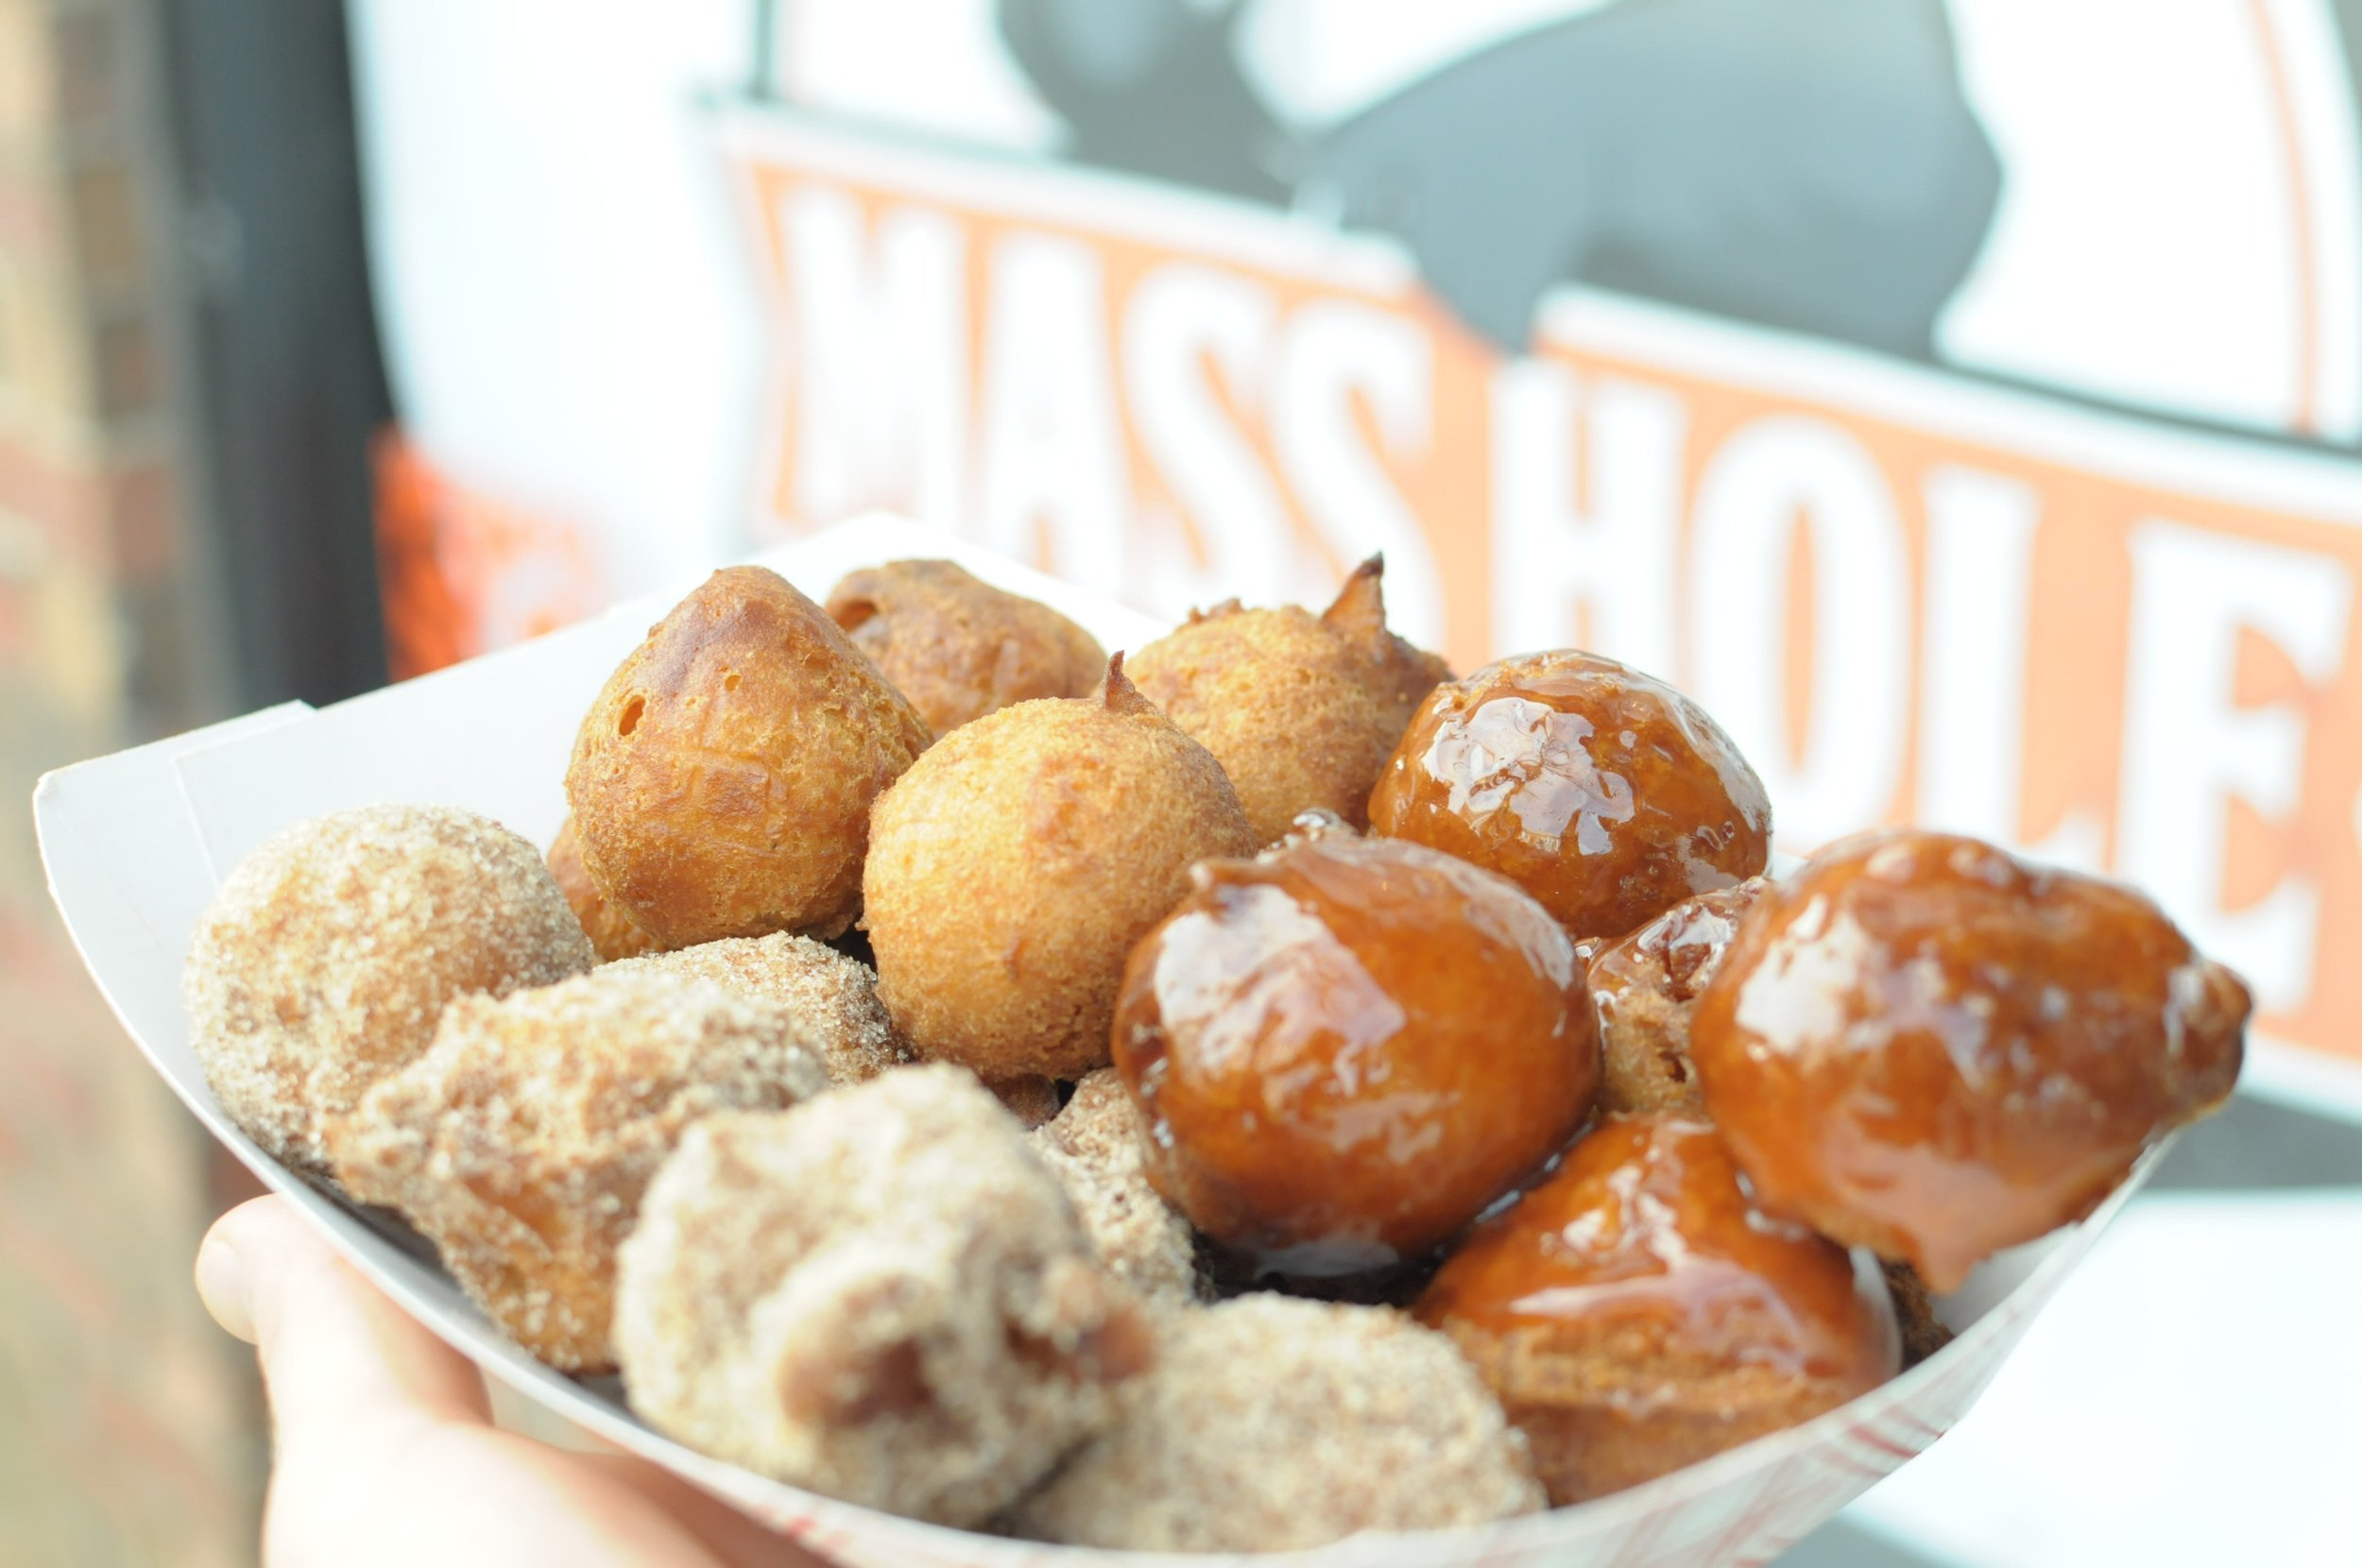 Our freshly fried apple cider Mass Holes: a New England tradition. Available plain, cinnamon sugar, or apple caramel.